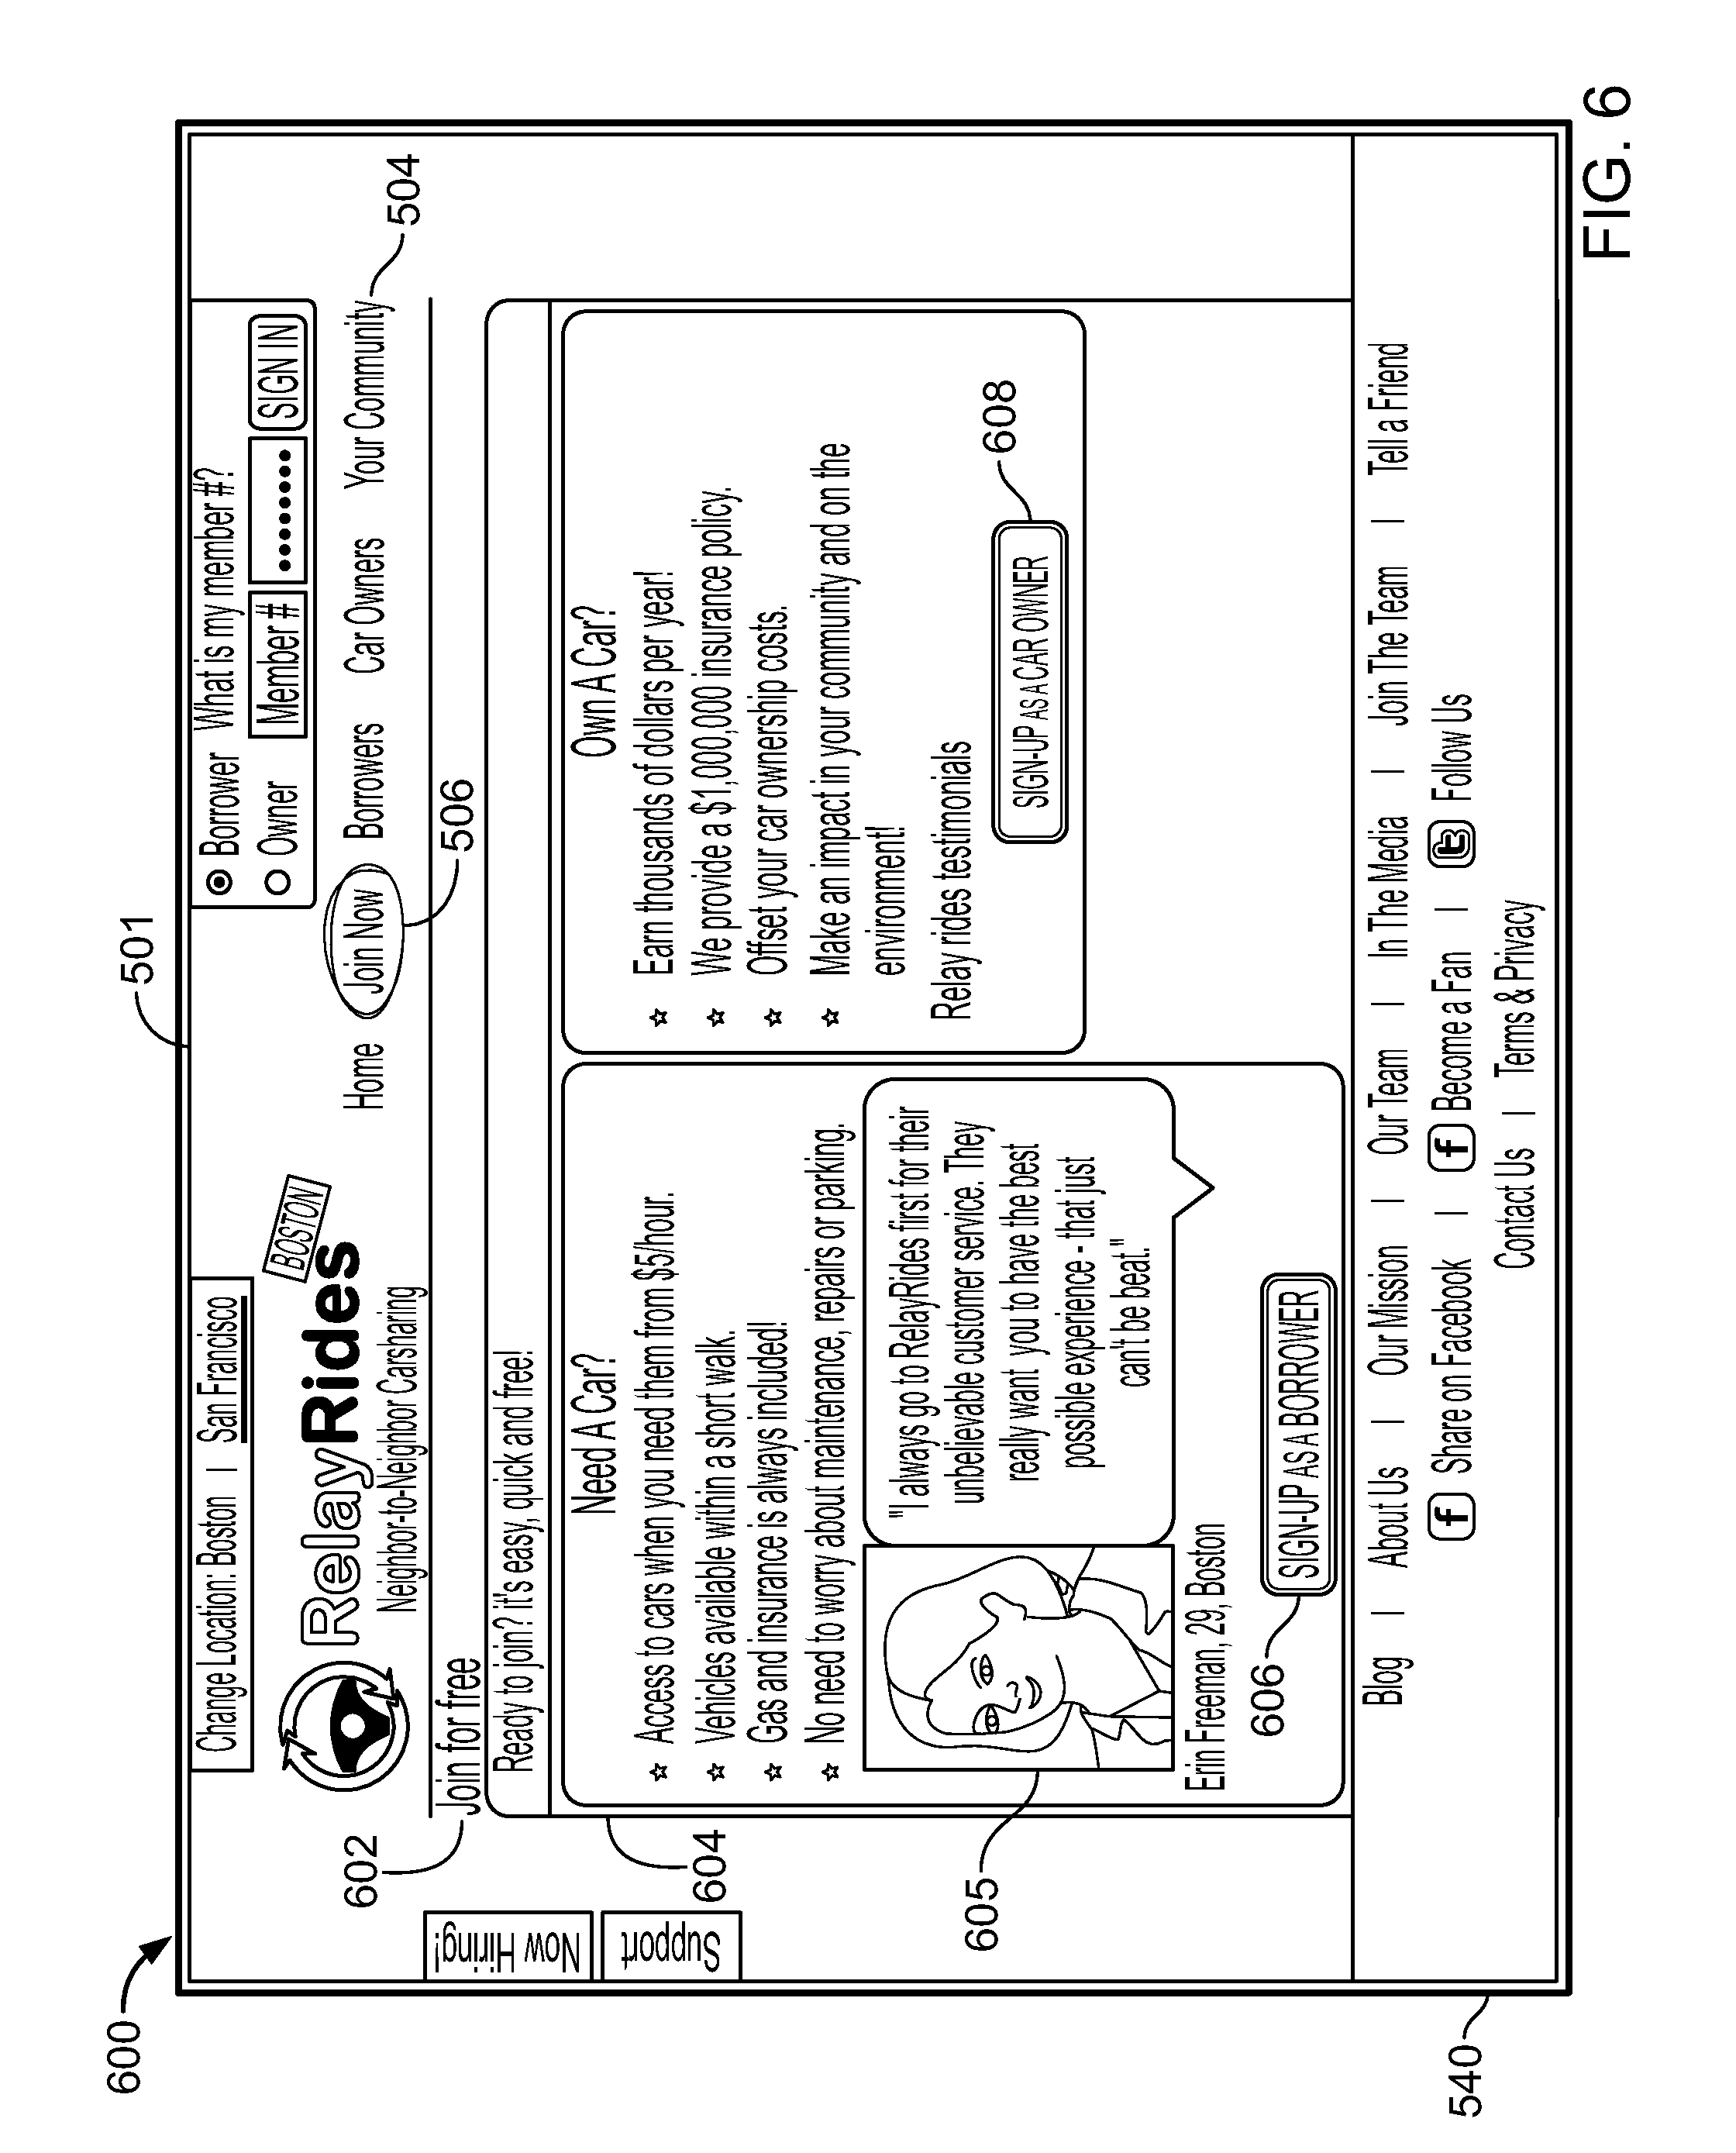 Editable Invoice Template Excel Patent Us  Car Sharing  Google Patents Pay Ups Invoice Word with Graphic Design Invoice Sample Pdf Patent Drawing Invoice Template Microsoft Word